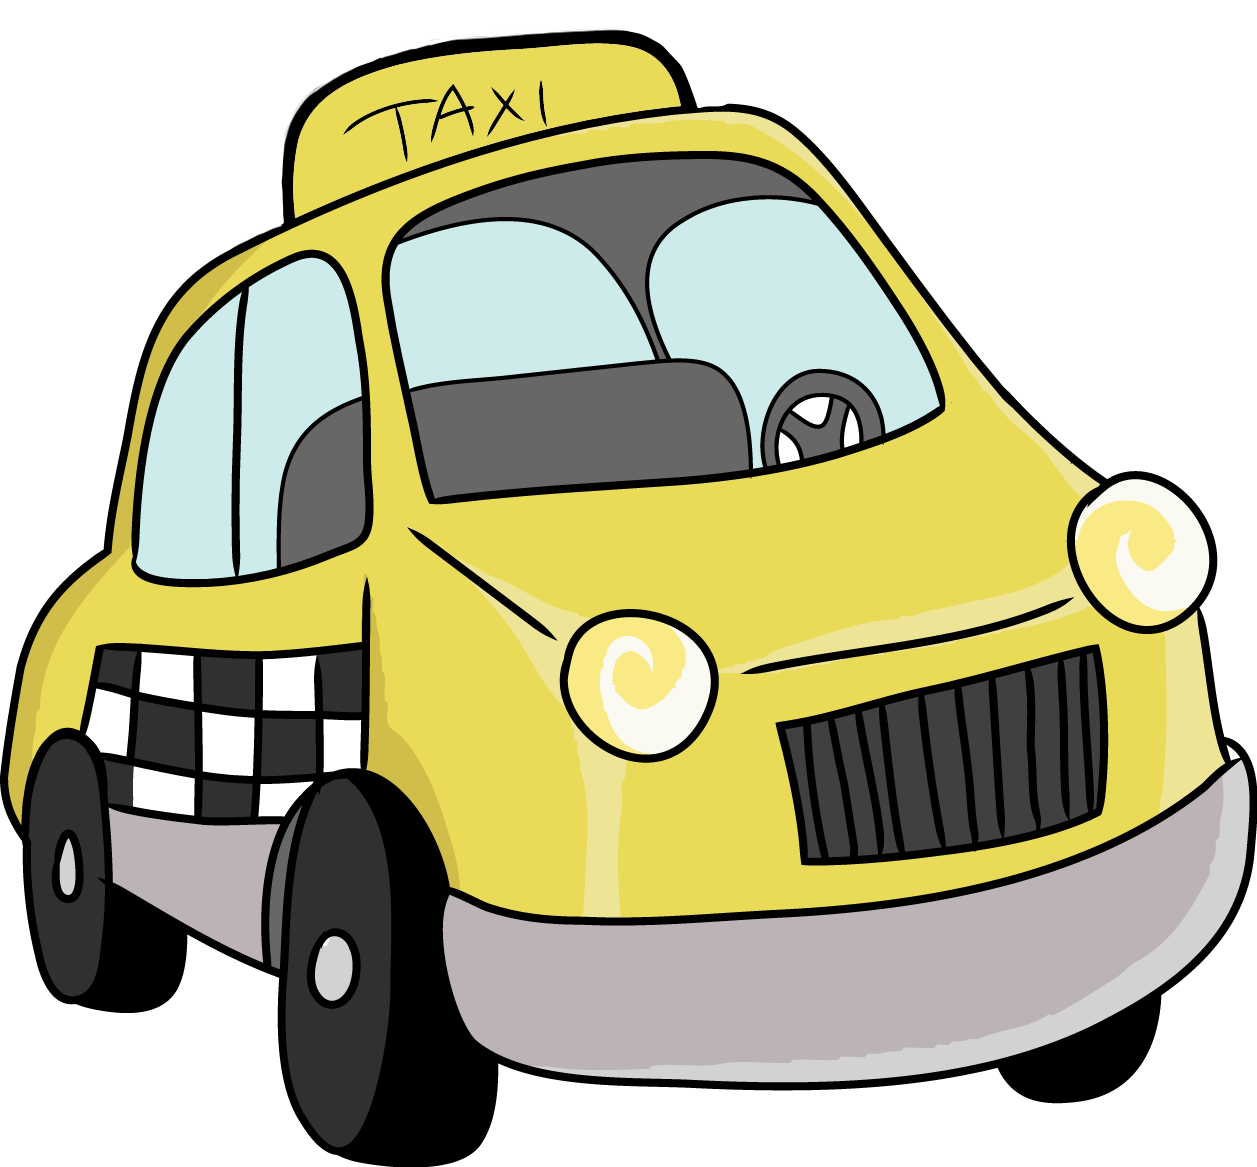 Yellow cab clipart clip freeuse library Free Taxi Cliparts, Download Free Clip Art, Free Clip Art on ... clip freeuse library